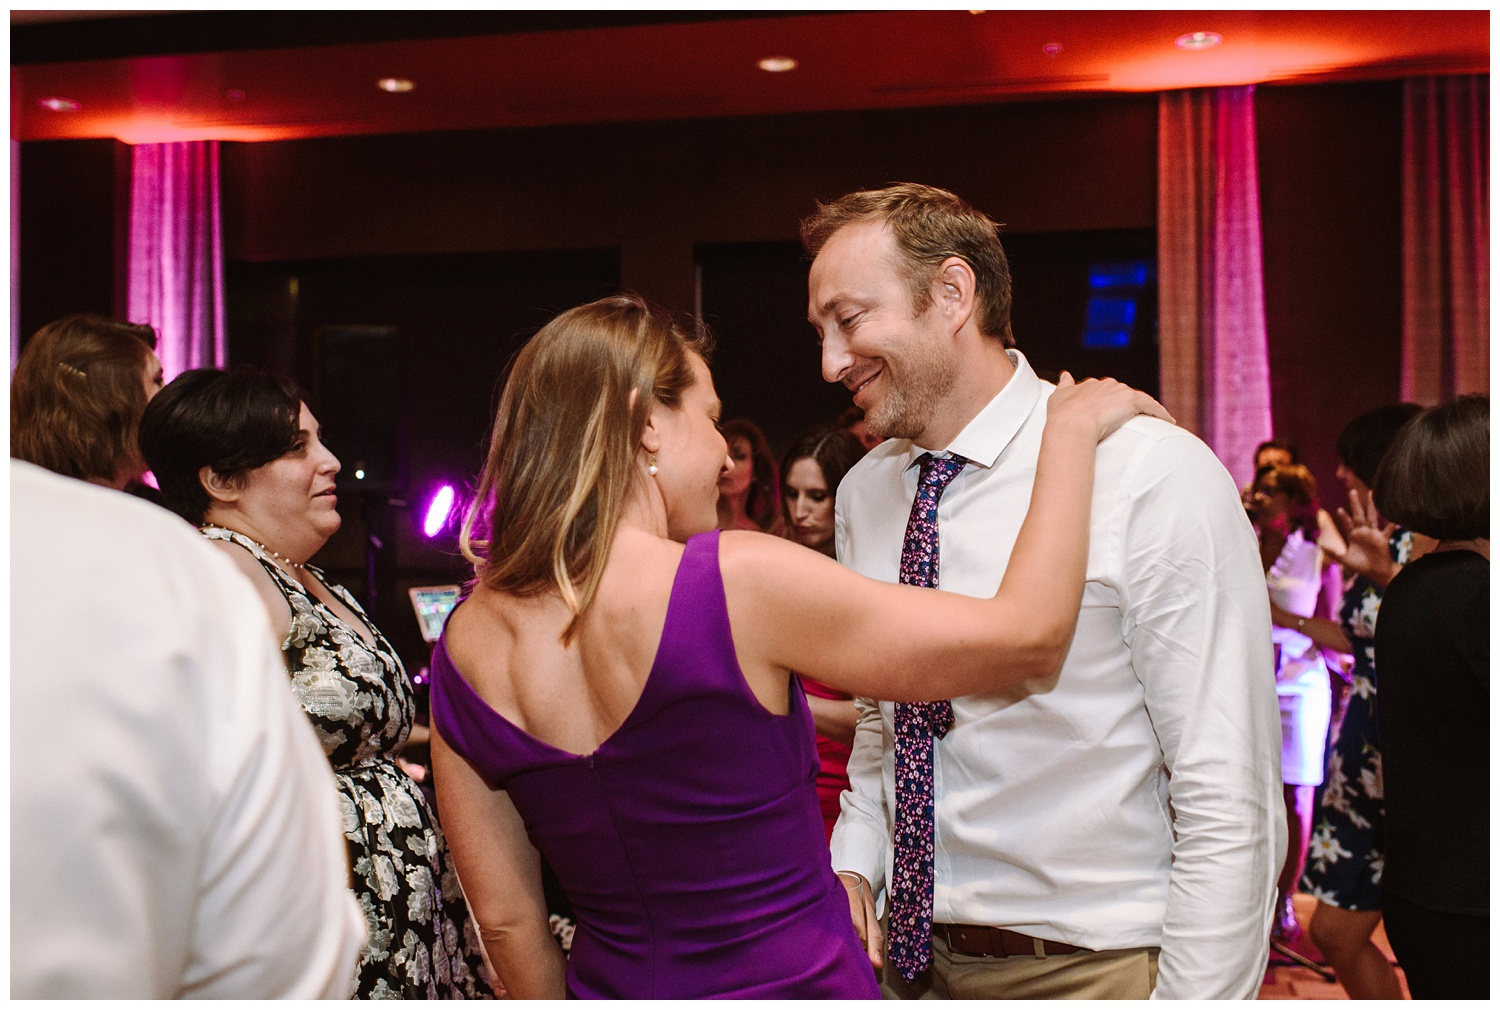 Renaissance Hotel Gillette Stadium Wedding Photographer116.jpg